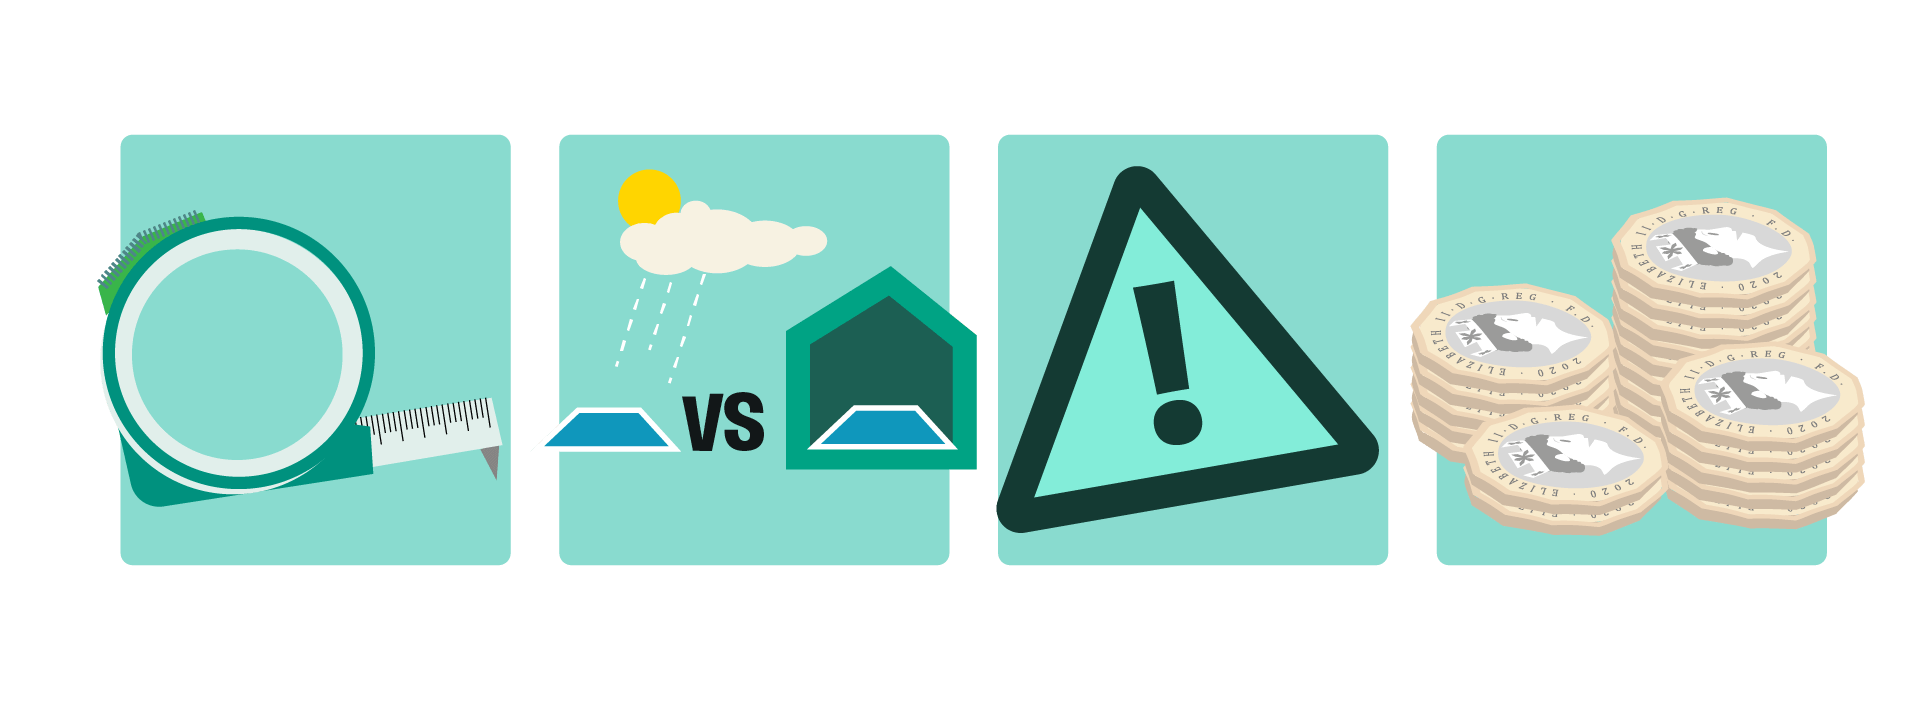 Size, indoor vs outside, warnings and cost